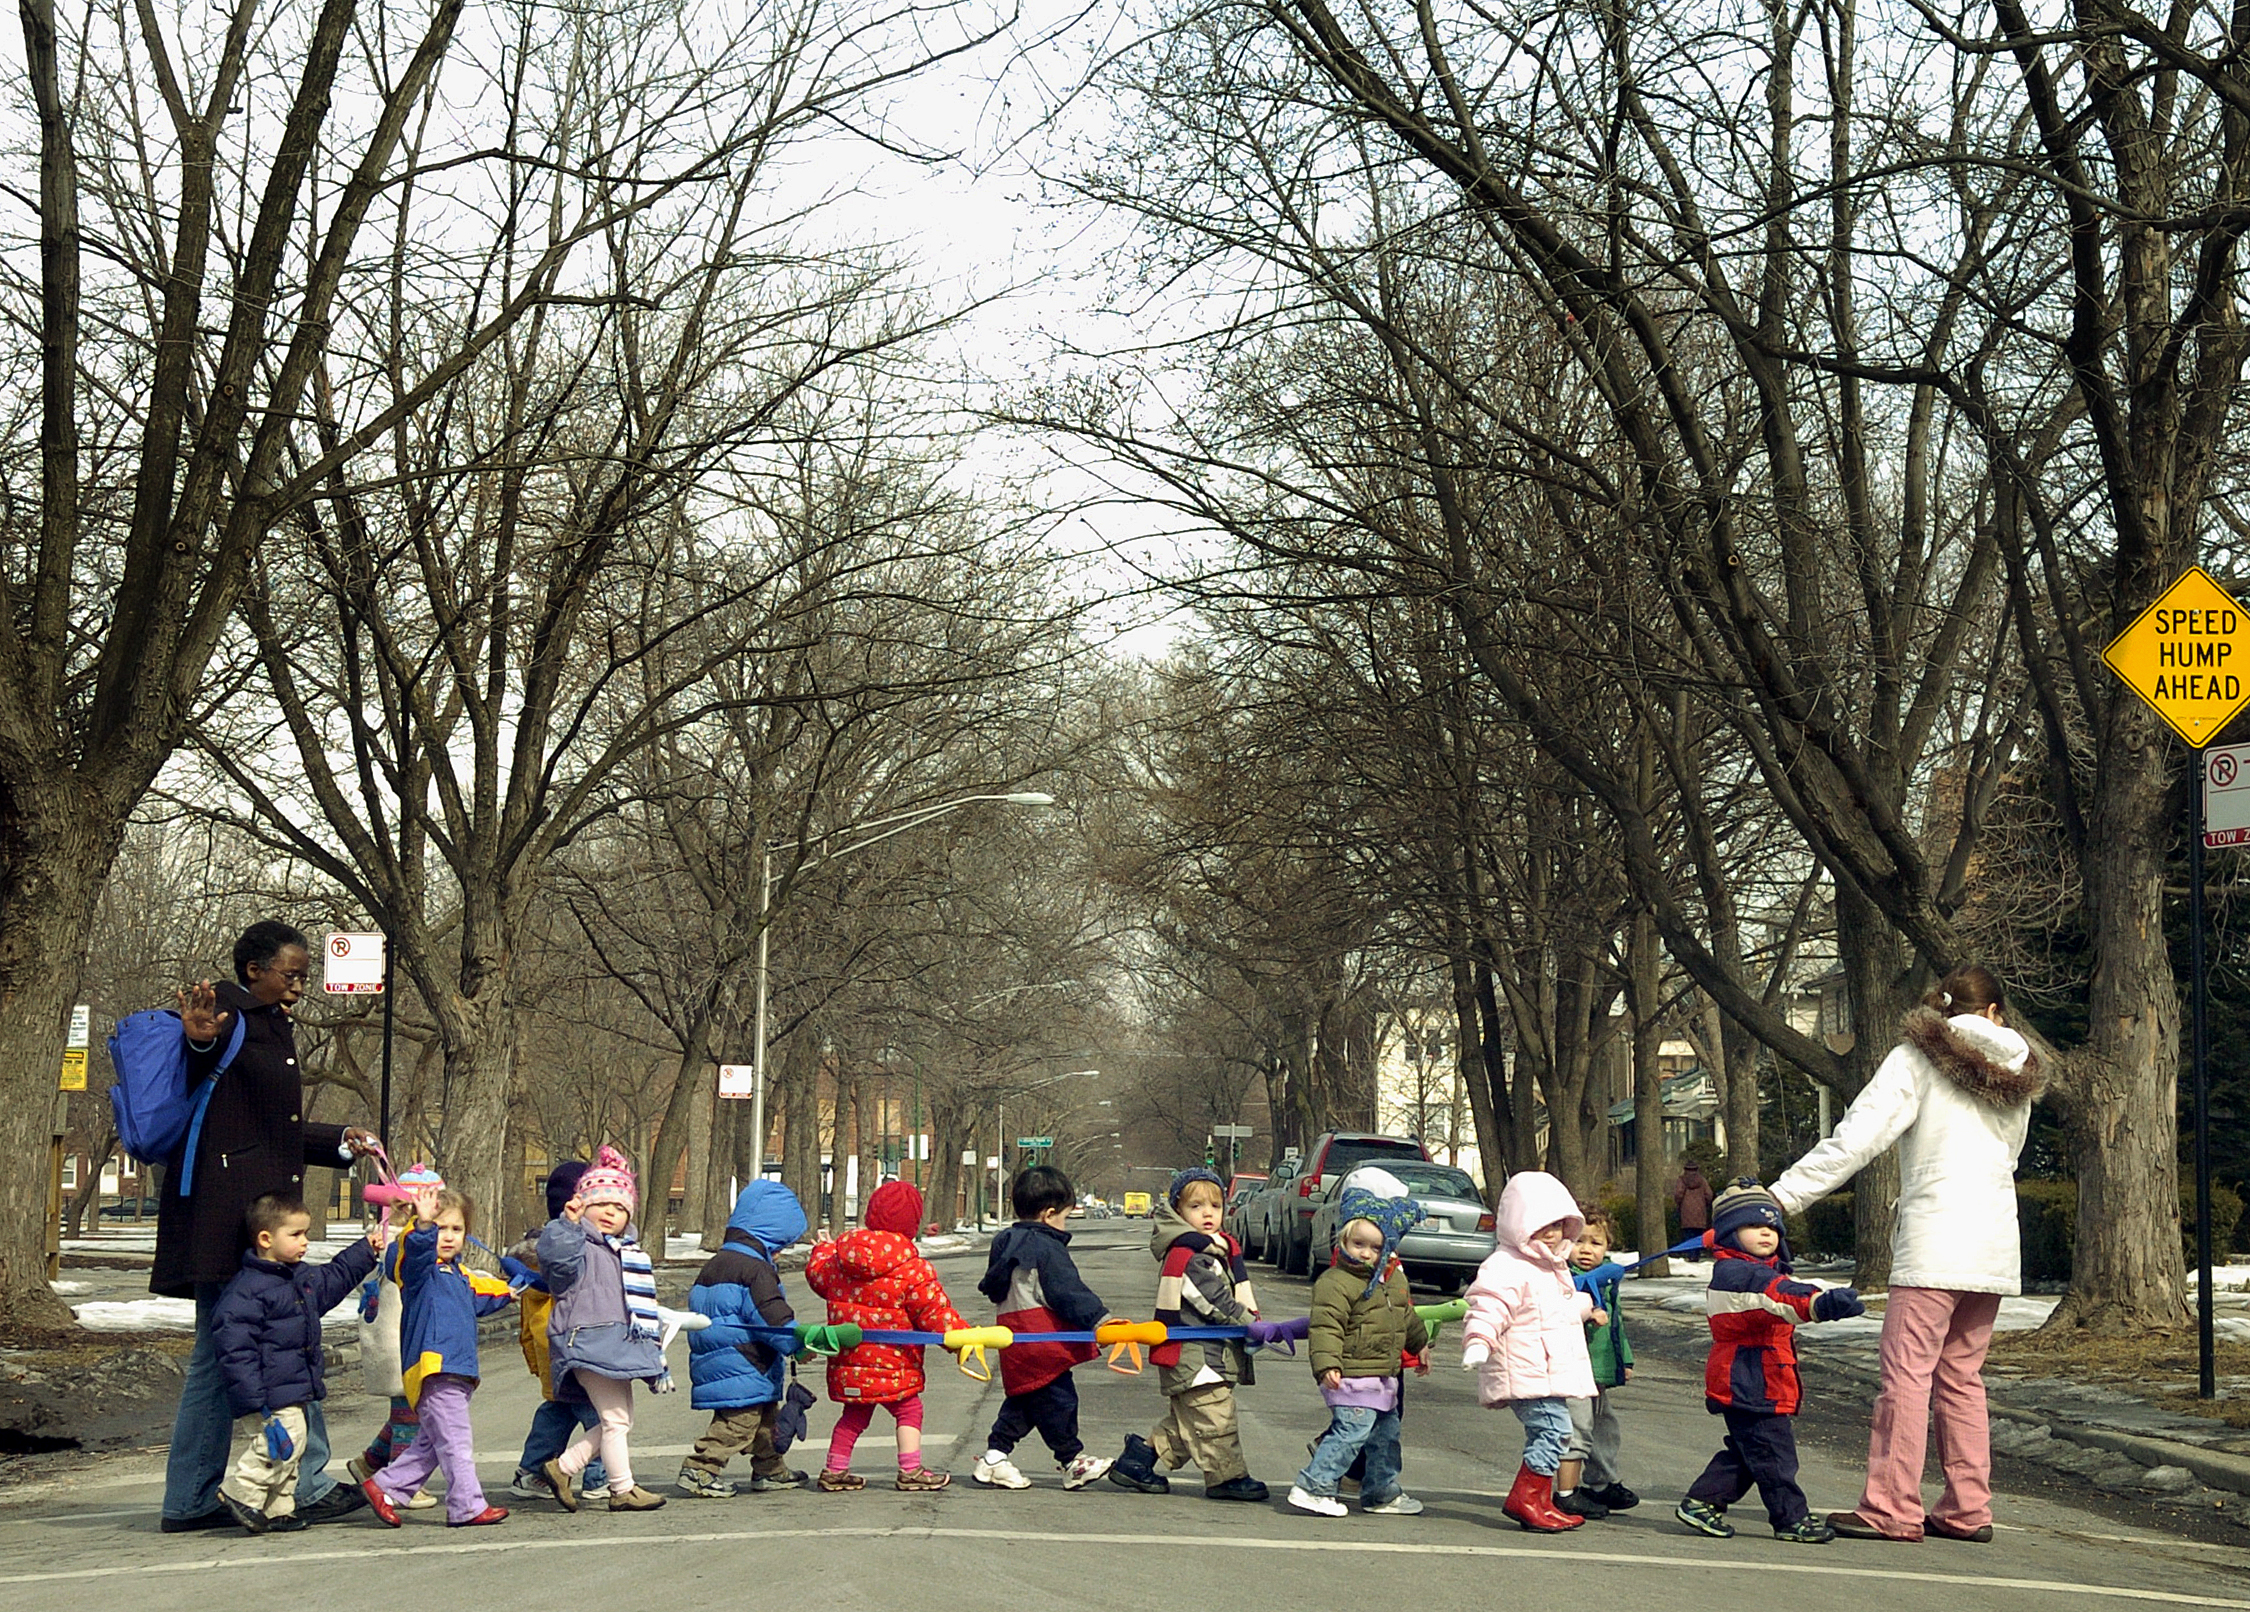 Daycare employees motion for cars to halt while walking a trail of toddlers across a North Side street in 2007.